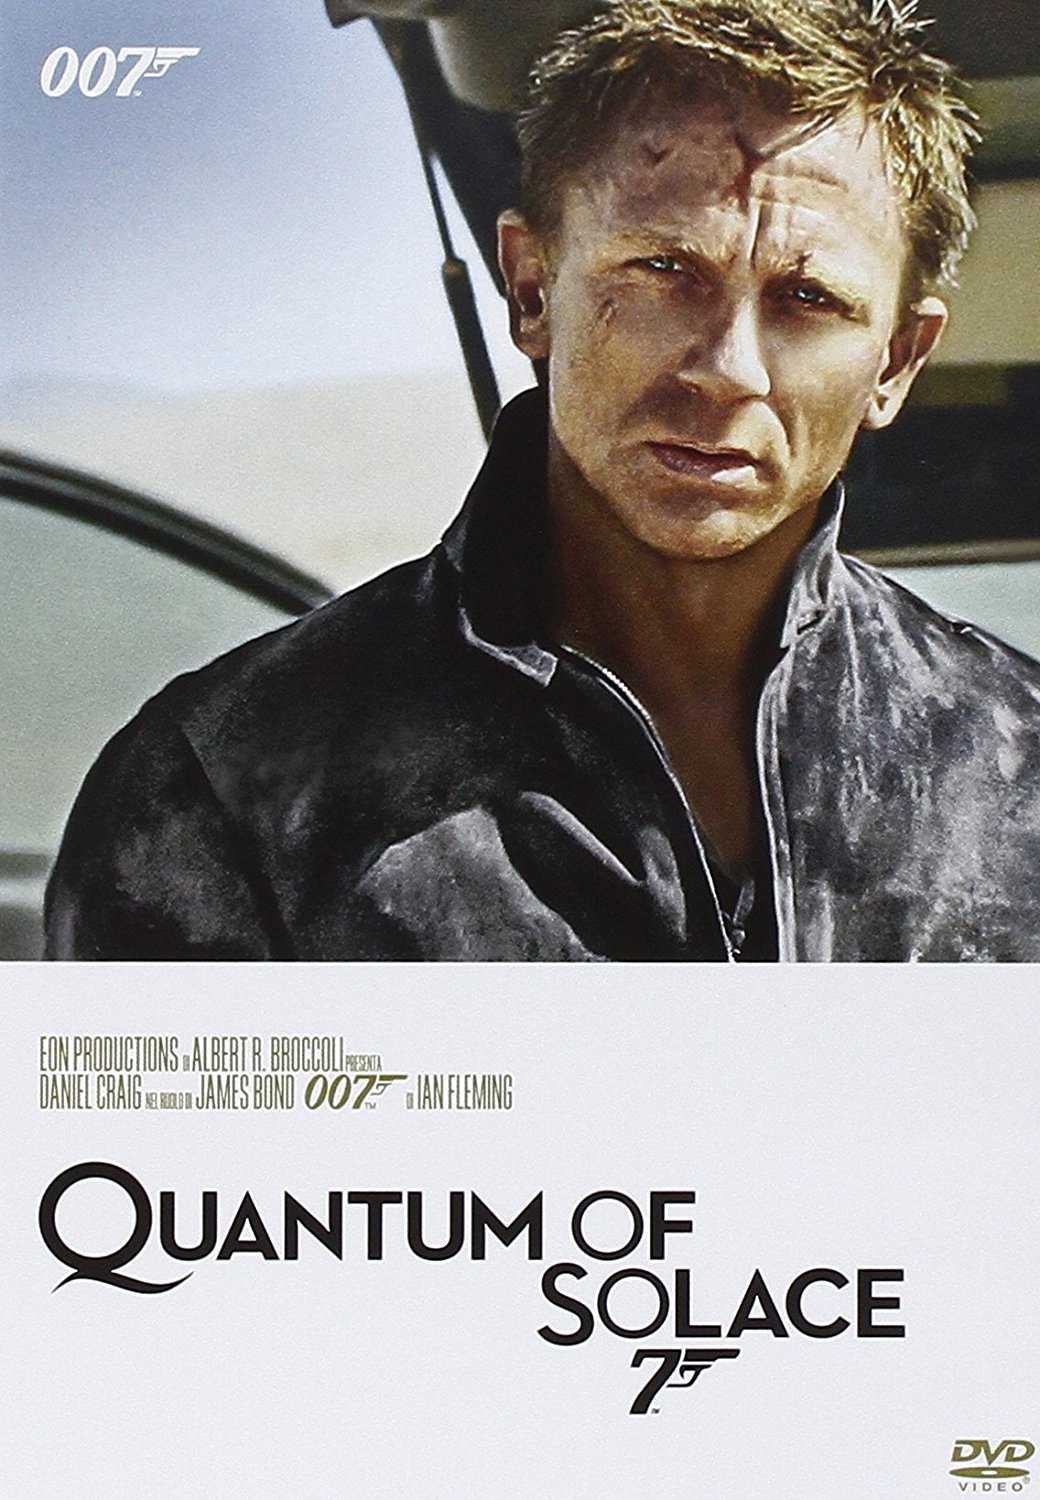 007 - QUANTUM OF SOLACE (DVD)